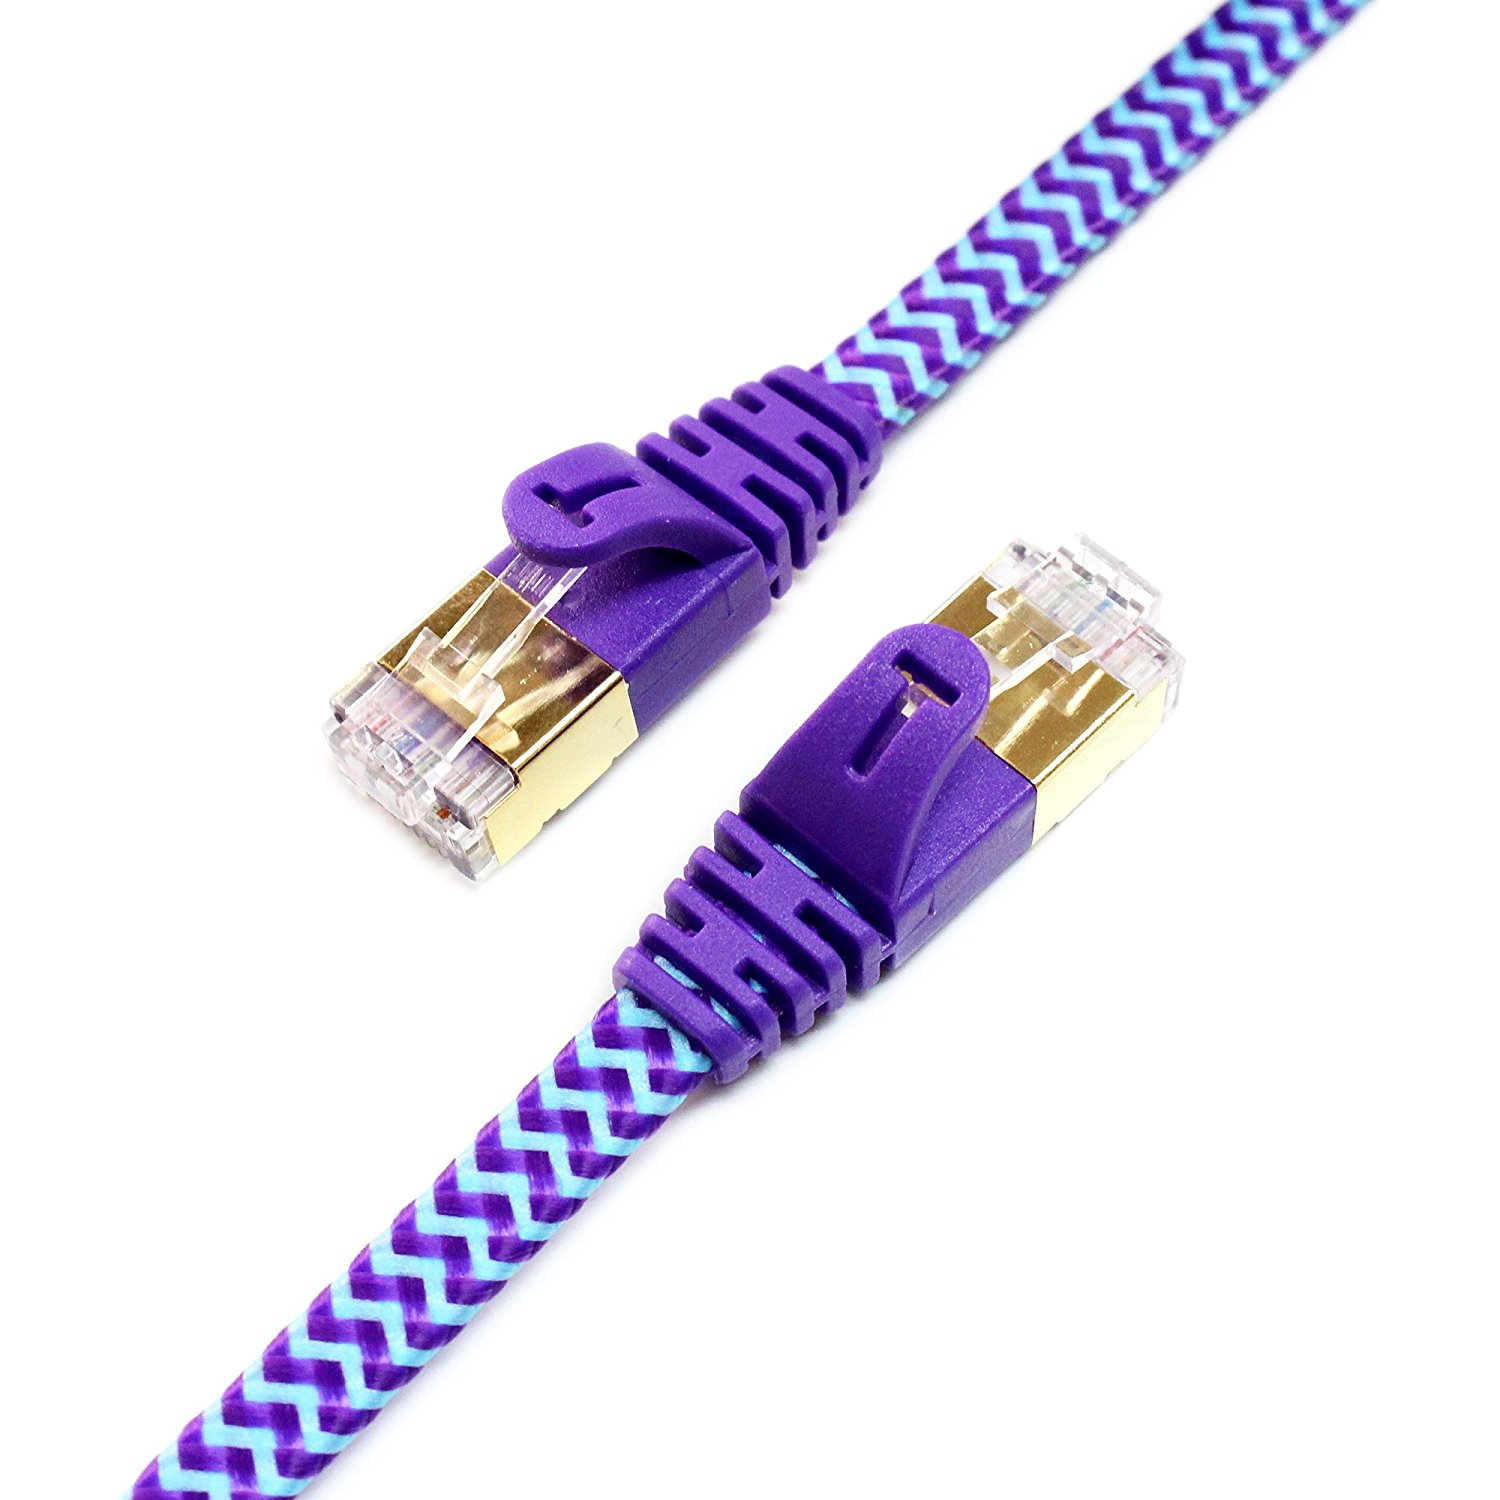 Tera Grand - CAT7 10 Gigabit Ethernet Ultra Flat Patch Cable for Modem Router LAN Network Playstation Xbox - Built with Gold Plated & Shielded RJ45 Connectors, 100 Feet White